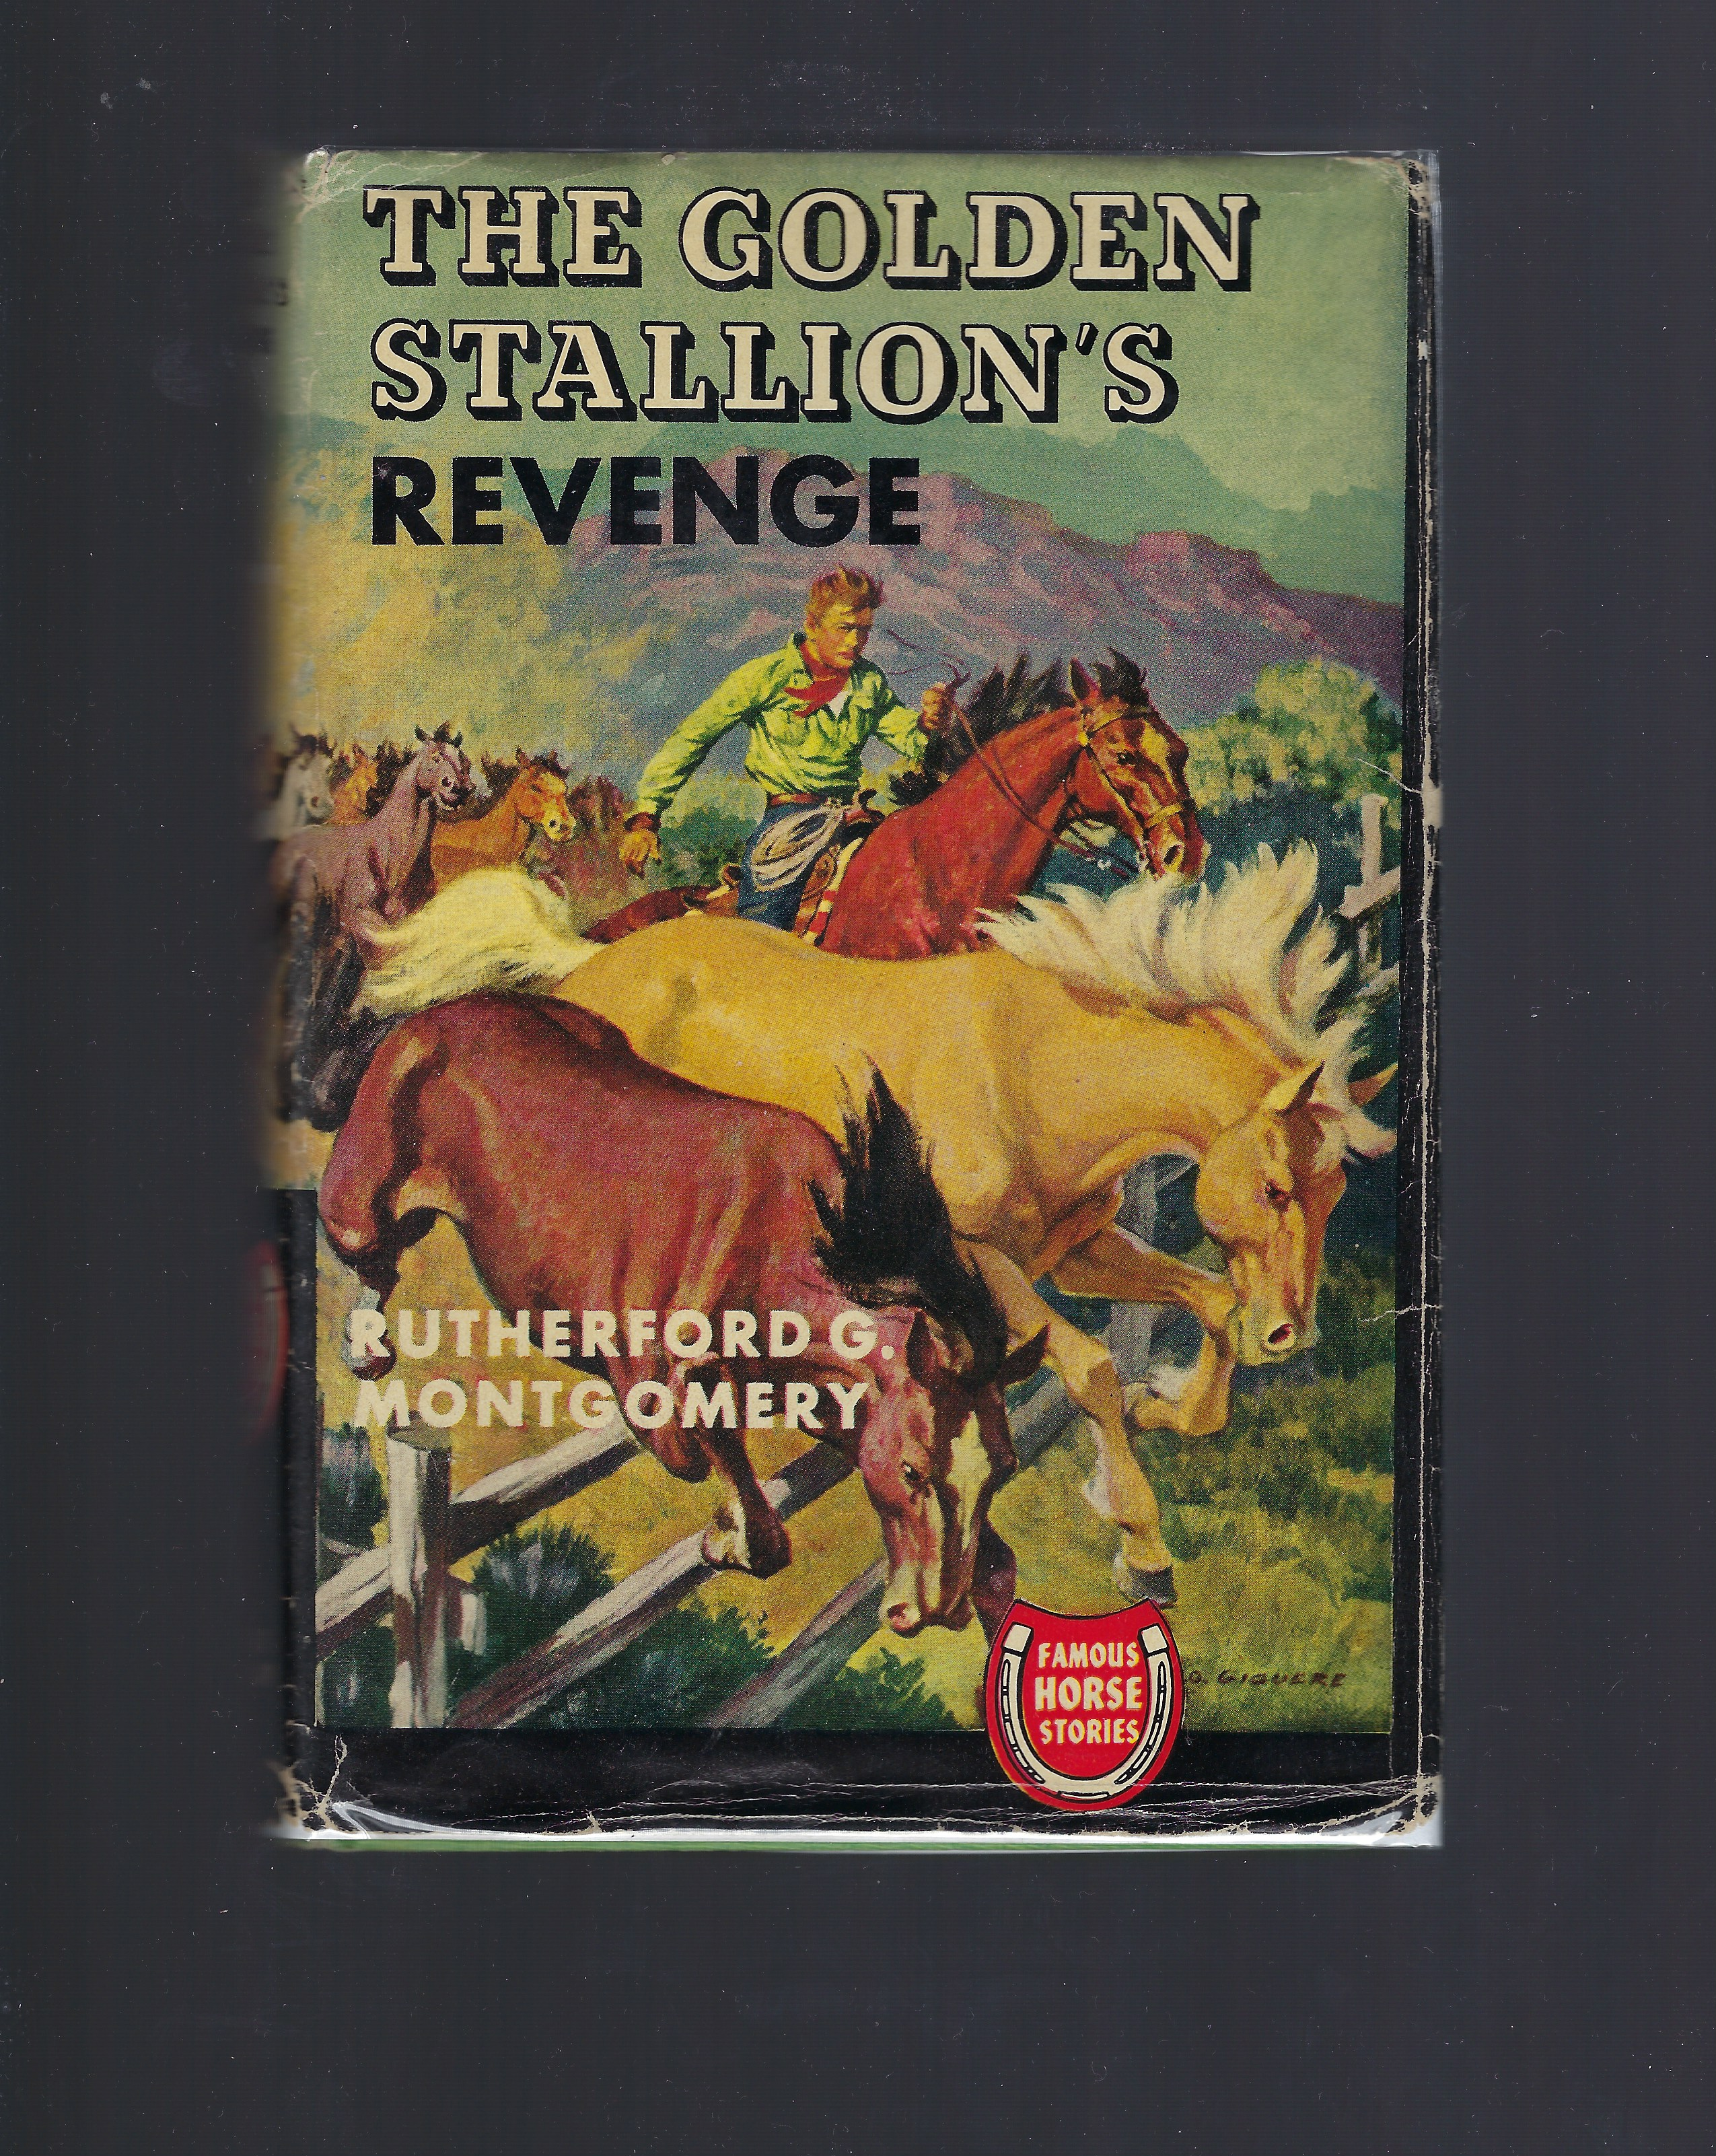 The Golden Stallion's Revenge (Famous Horse Stories) HB/DJ, Rutherford G. Montgomery